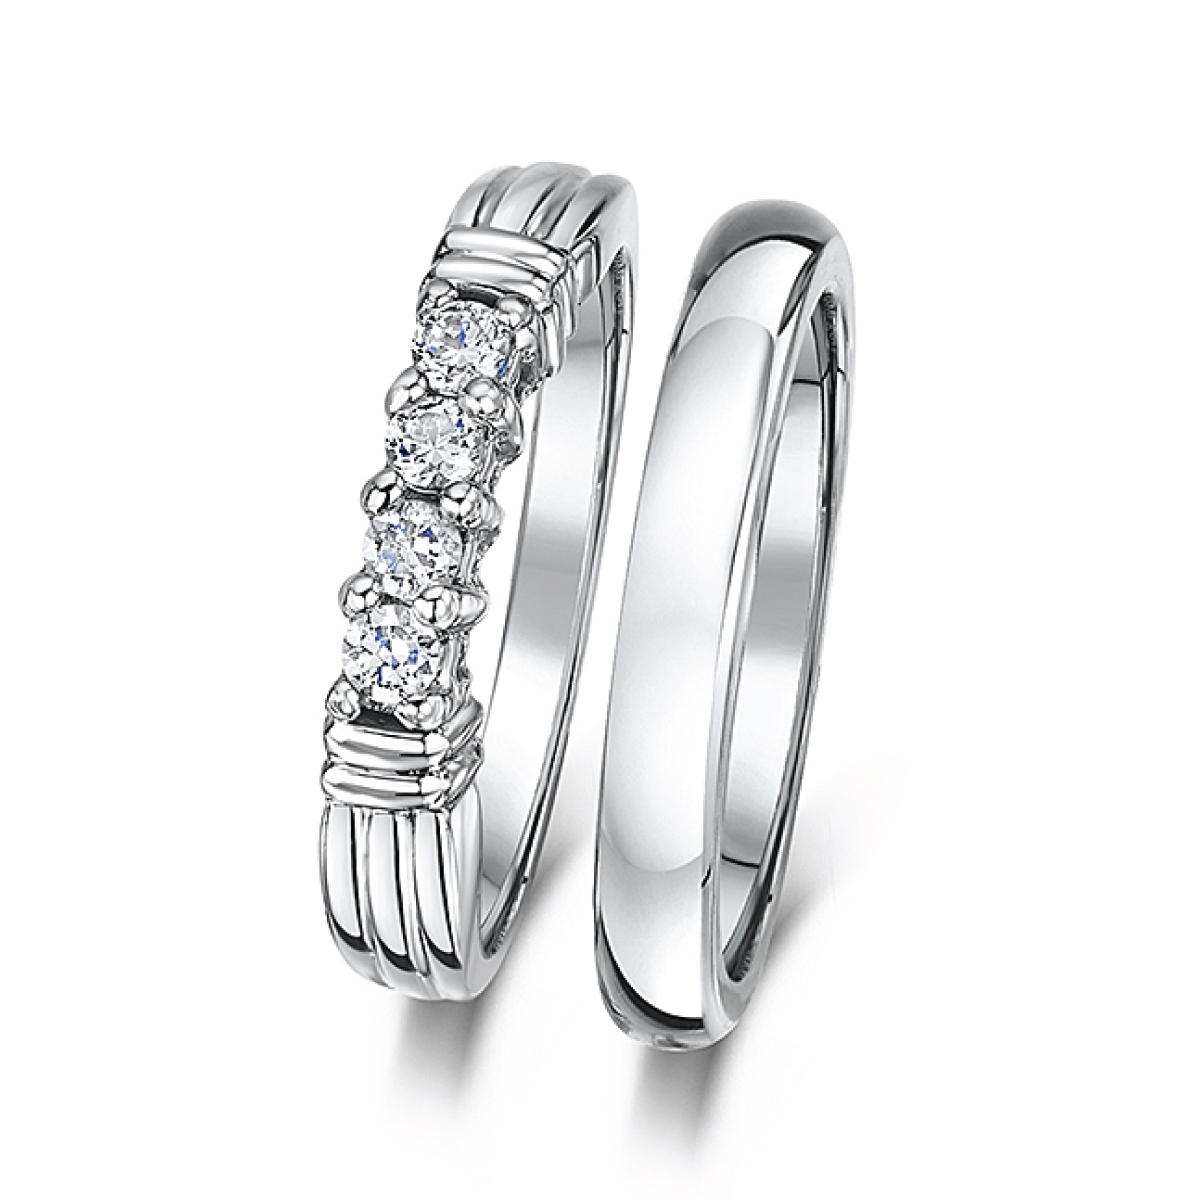 wedding white shiny ring nation edges polished products with rings tungsten cobalt beveled black